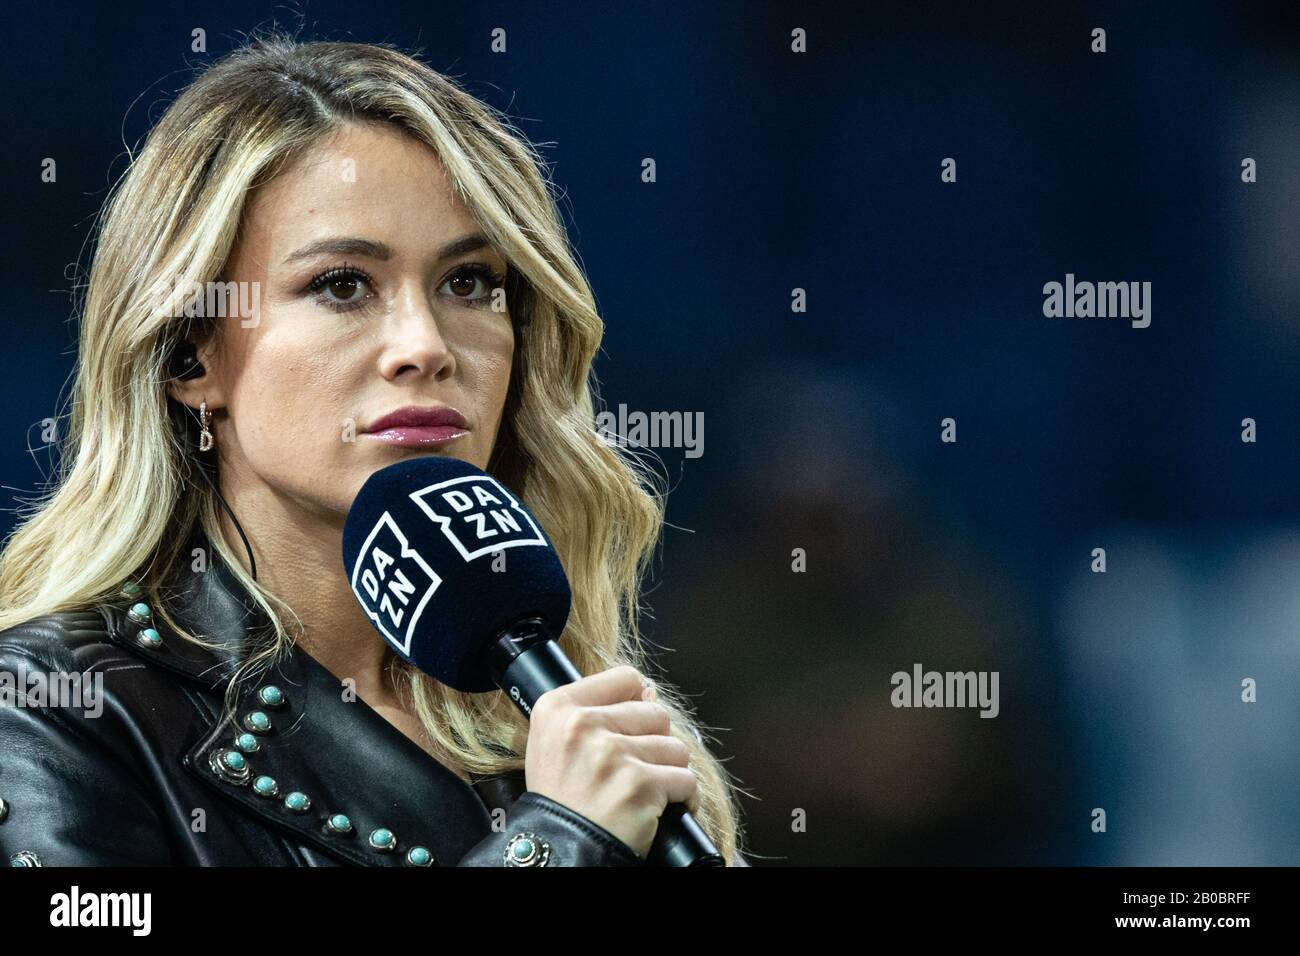 Diletta Leotta Dazn During Atalanta Vs As Roma Bergamo Italy 15 Feb 2020 Soccer Italian Serie A Soccer Match Stock Photo Alamy